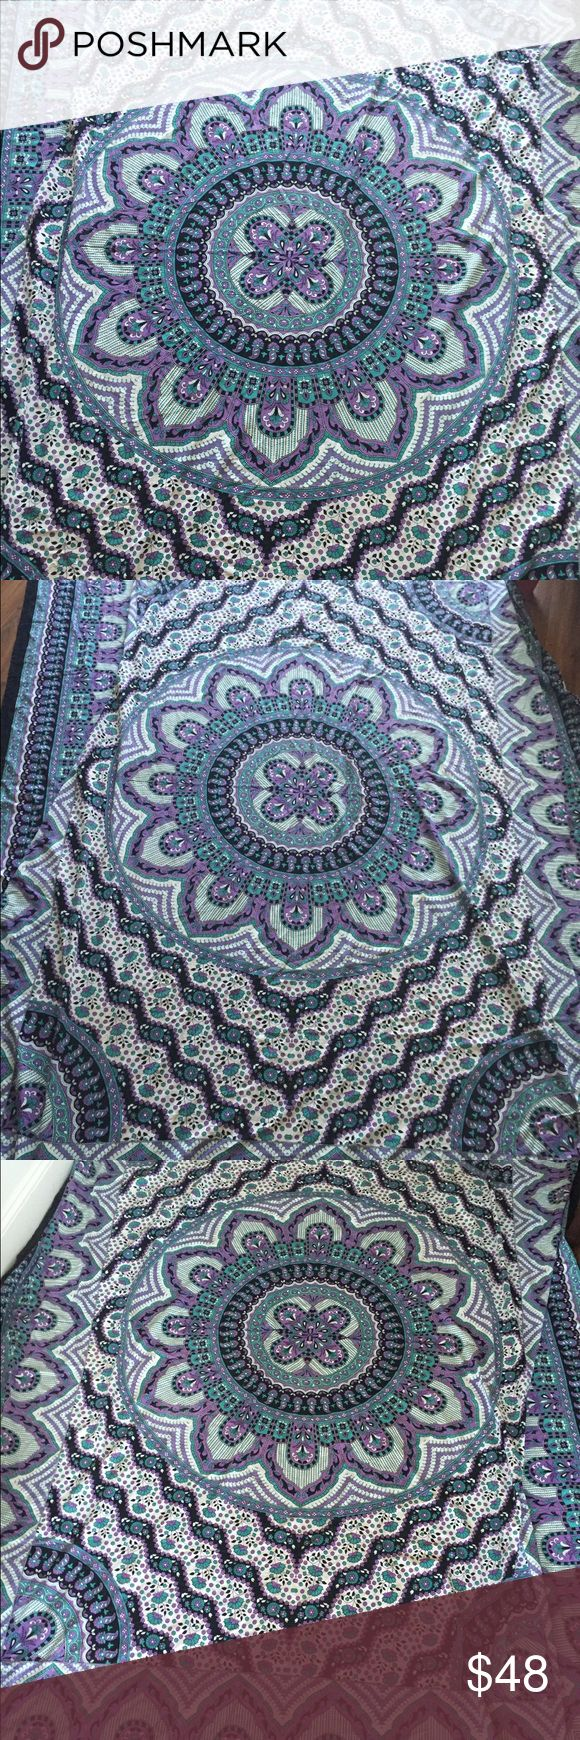 Urban outfitters tapestry Extra large tapestry from urban outfitters Urban Outfitters Other